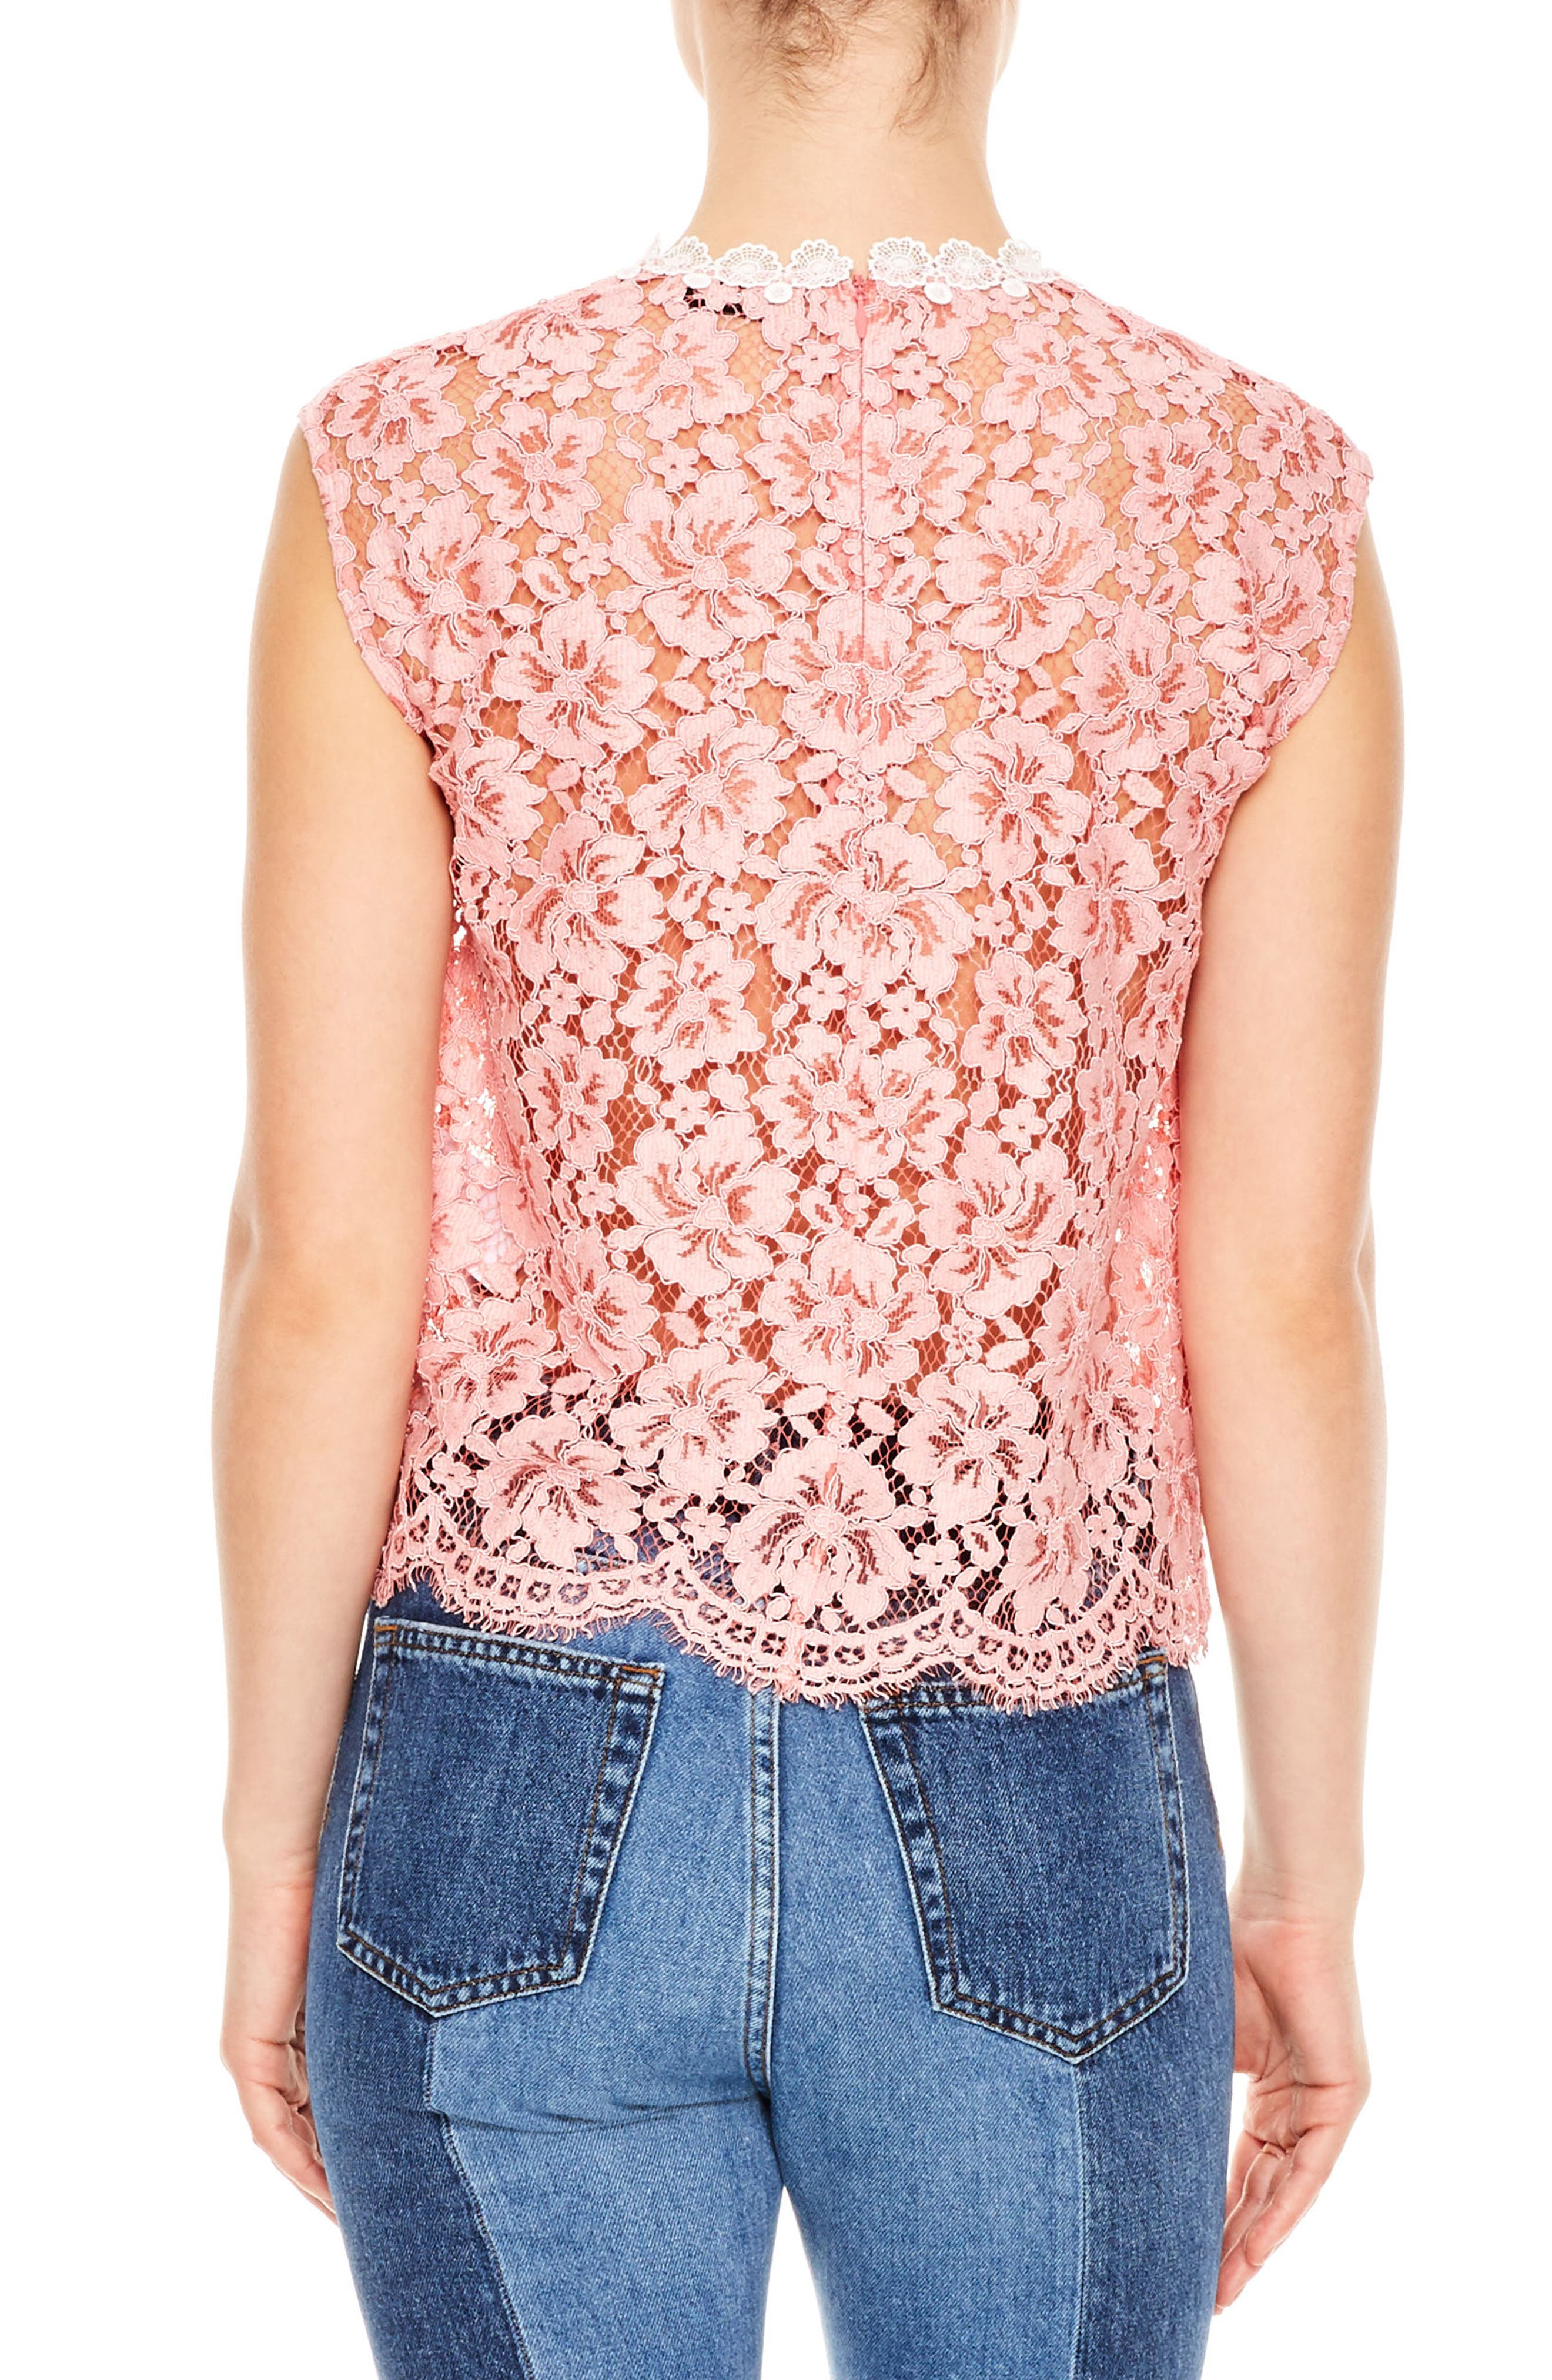 Rose Floral Lace Sleeveless Blouse,                             Alternate thumbnail 2, color,                             650